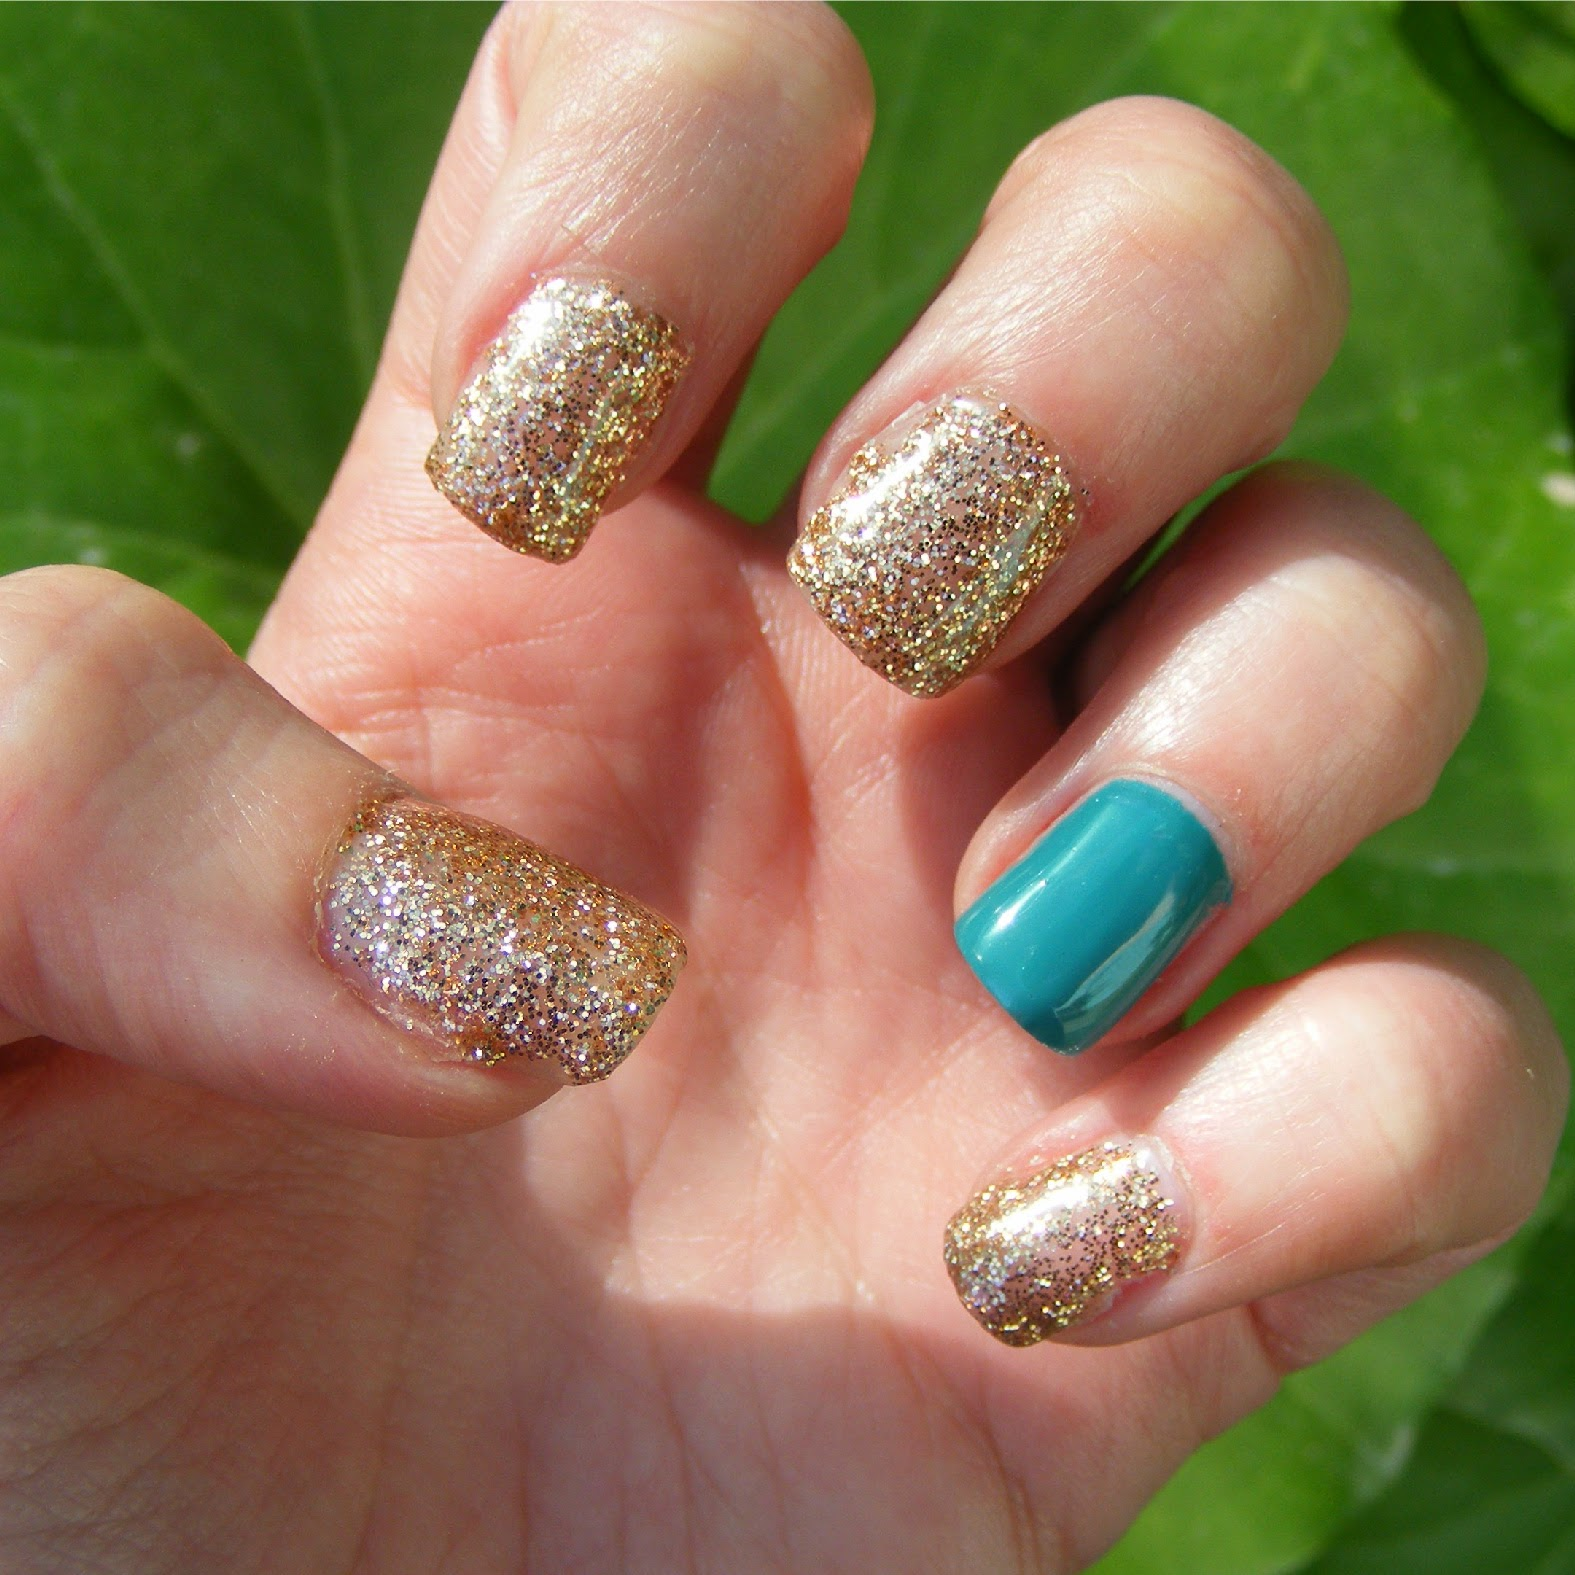 Nails Of The Day (NOTD): Glitter gel manicure ~ Cosette